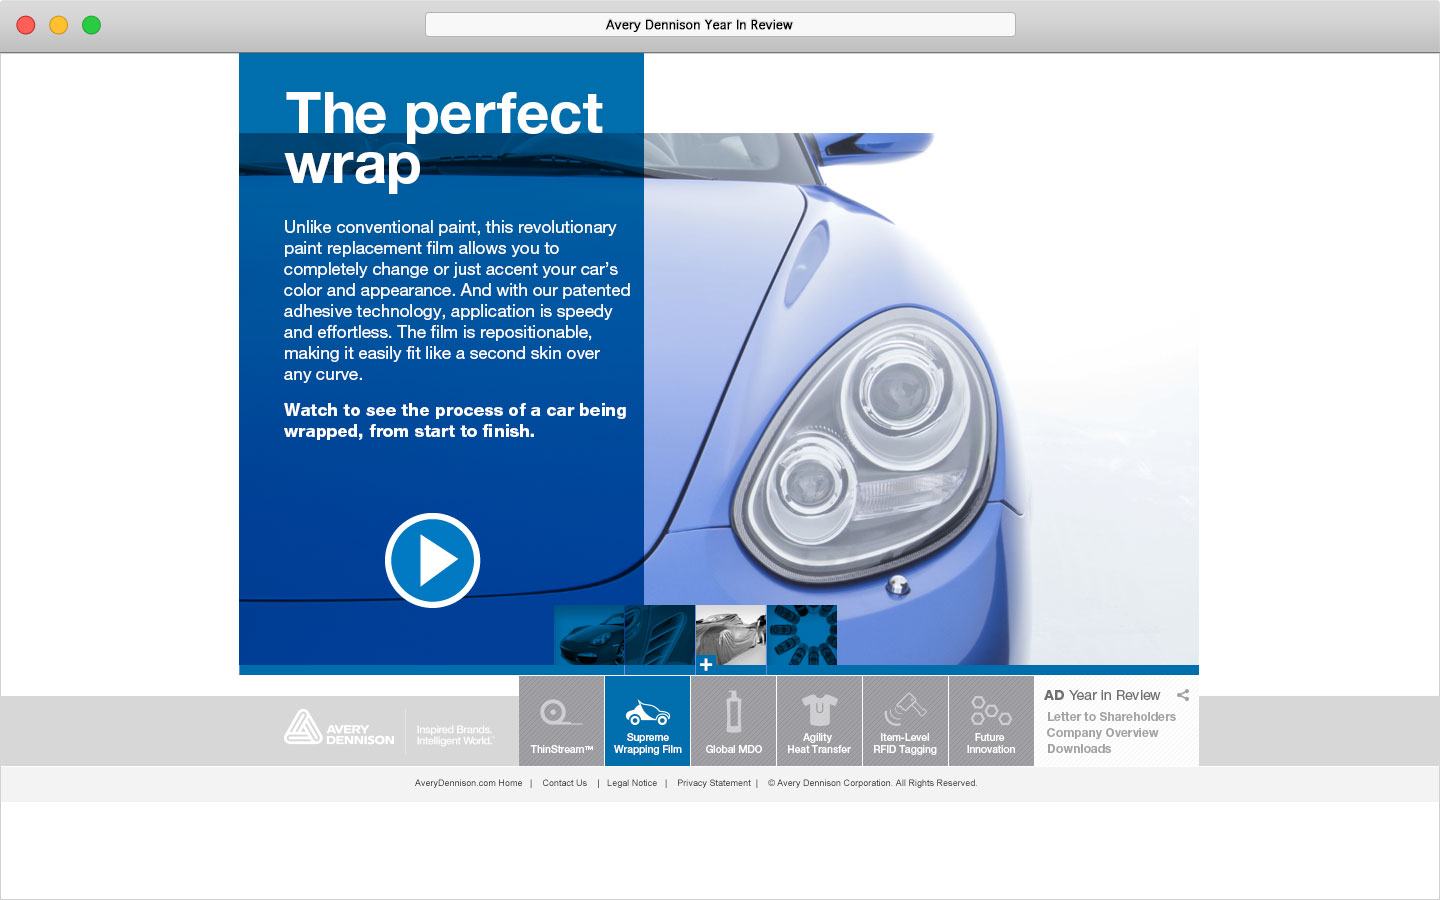 Avery Dennison 2011 Online Year In Review Supreme Wrapping Film The perfect wrap